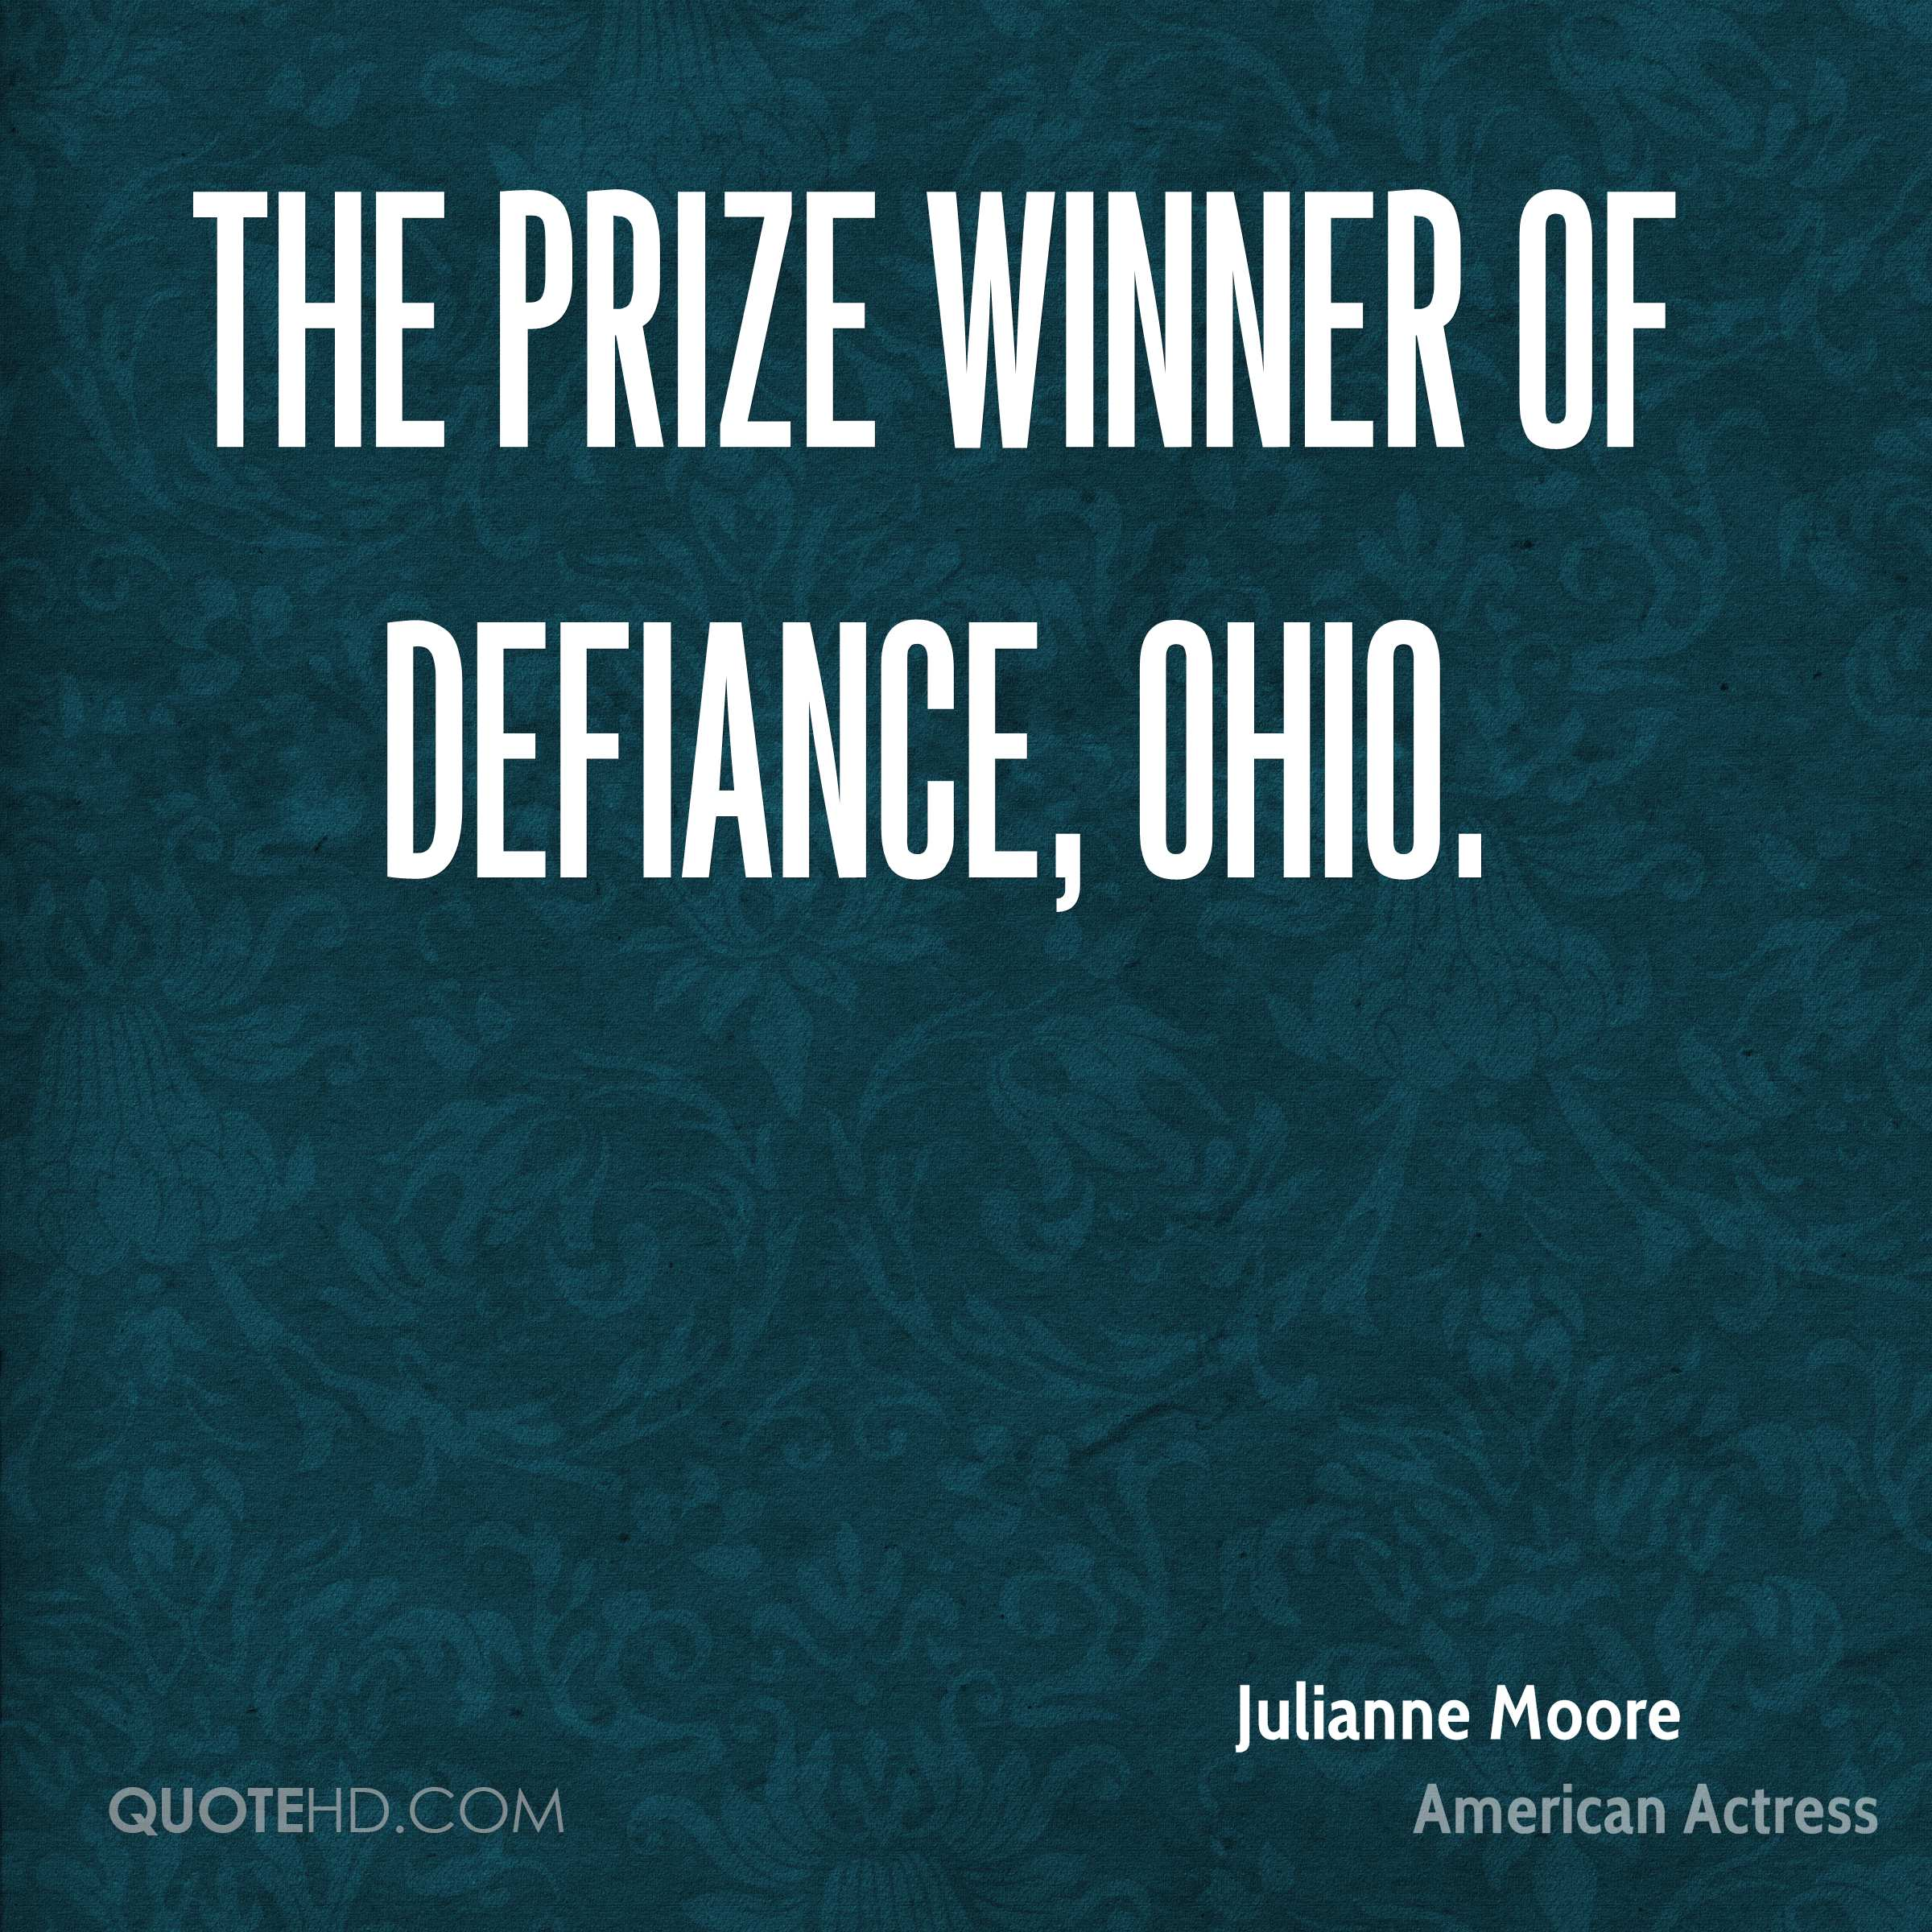 The Prize Winner of Defiance, Ohio.